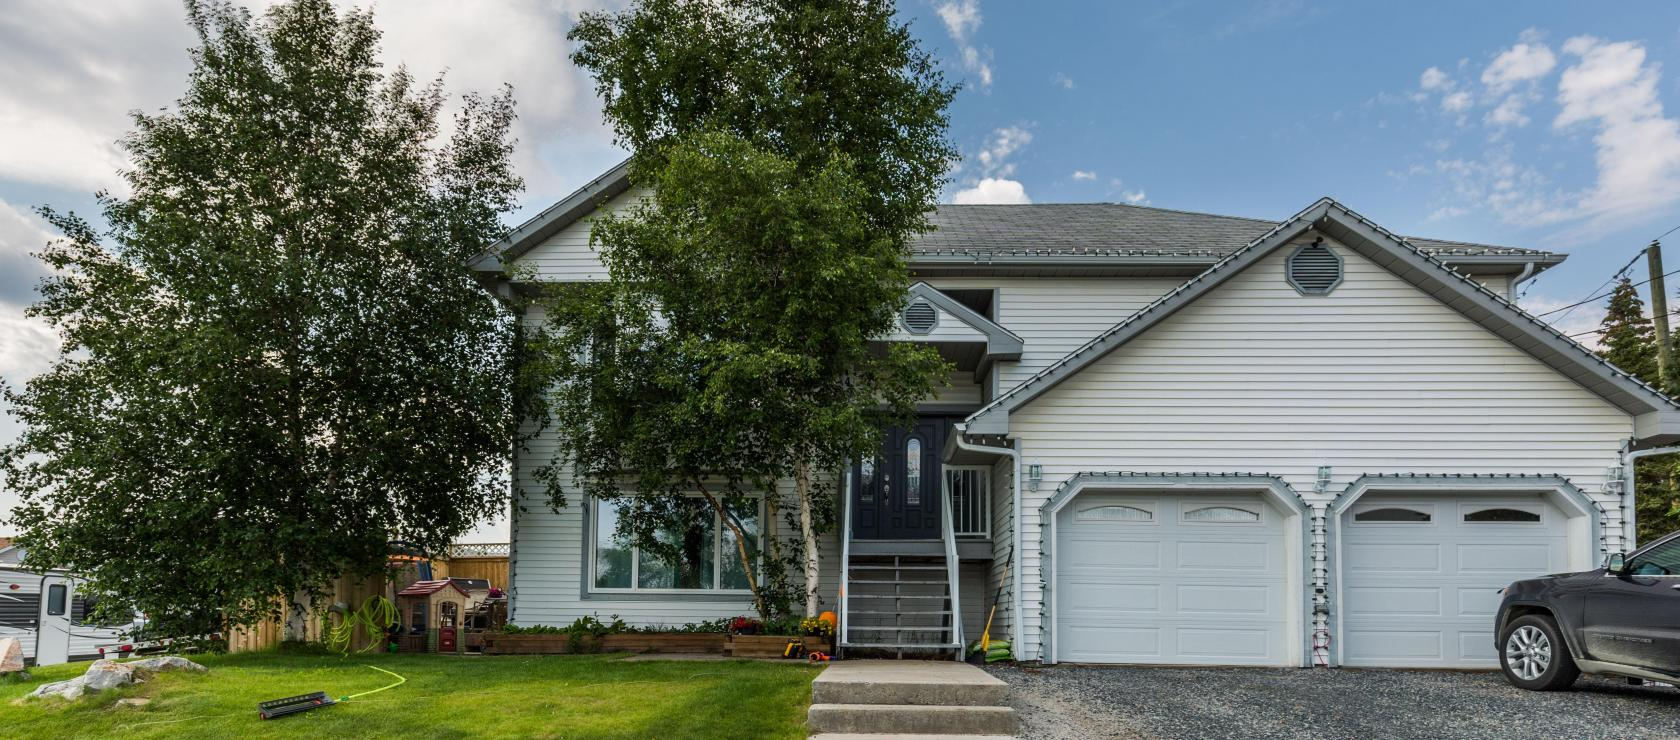 140 Rivett Crescent, Range Lake, Yellowknife 2